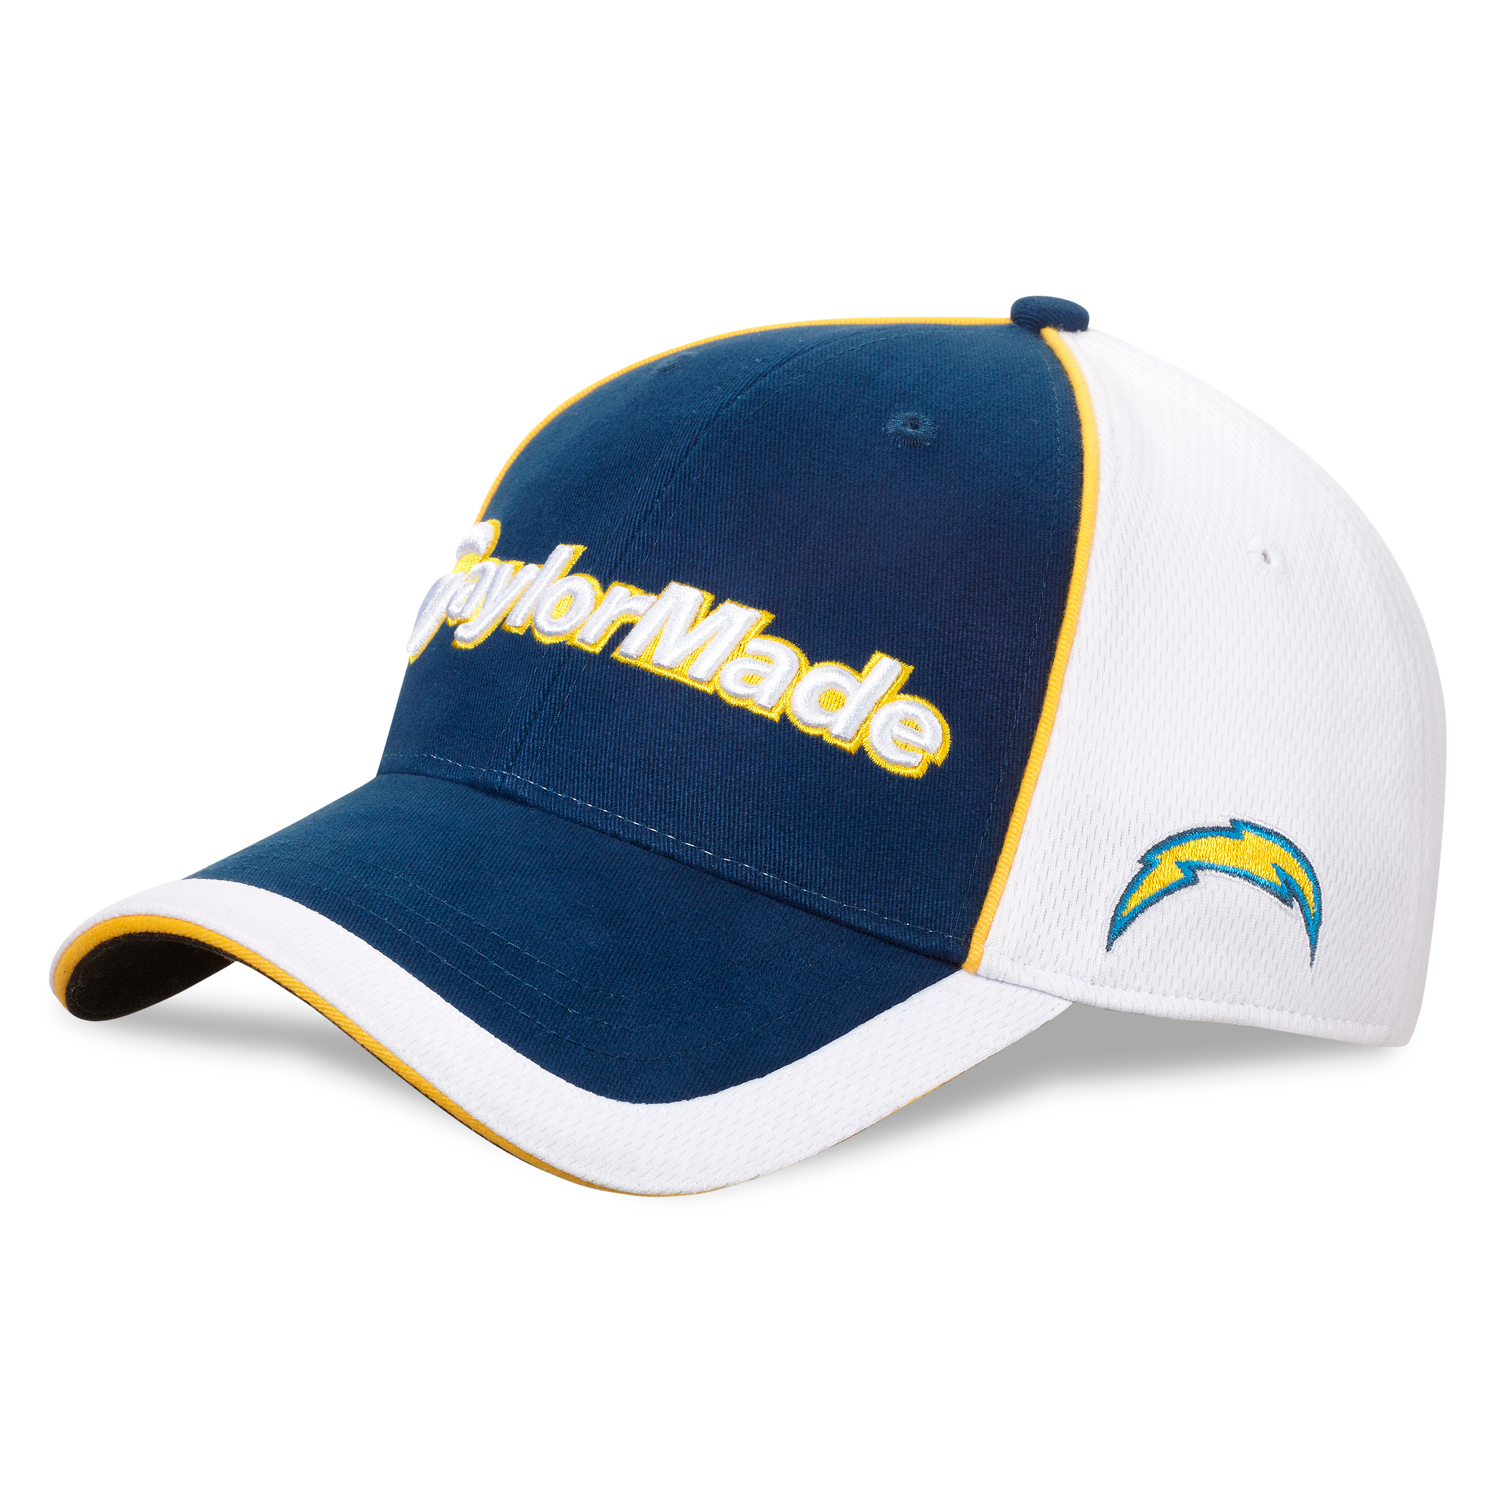 San Diego Chargers Caps: TaylorMade Golf NFL Hat 2012 San Diego Chargers